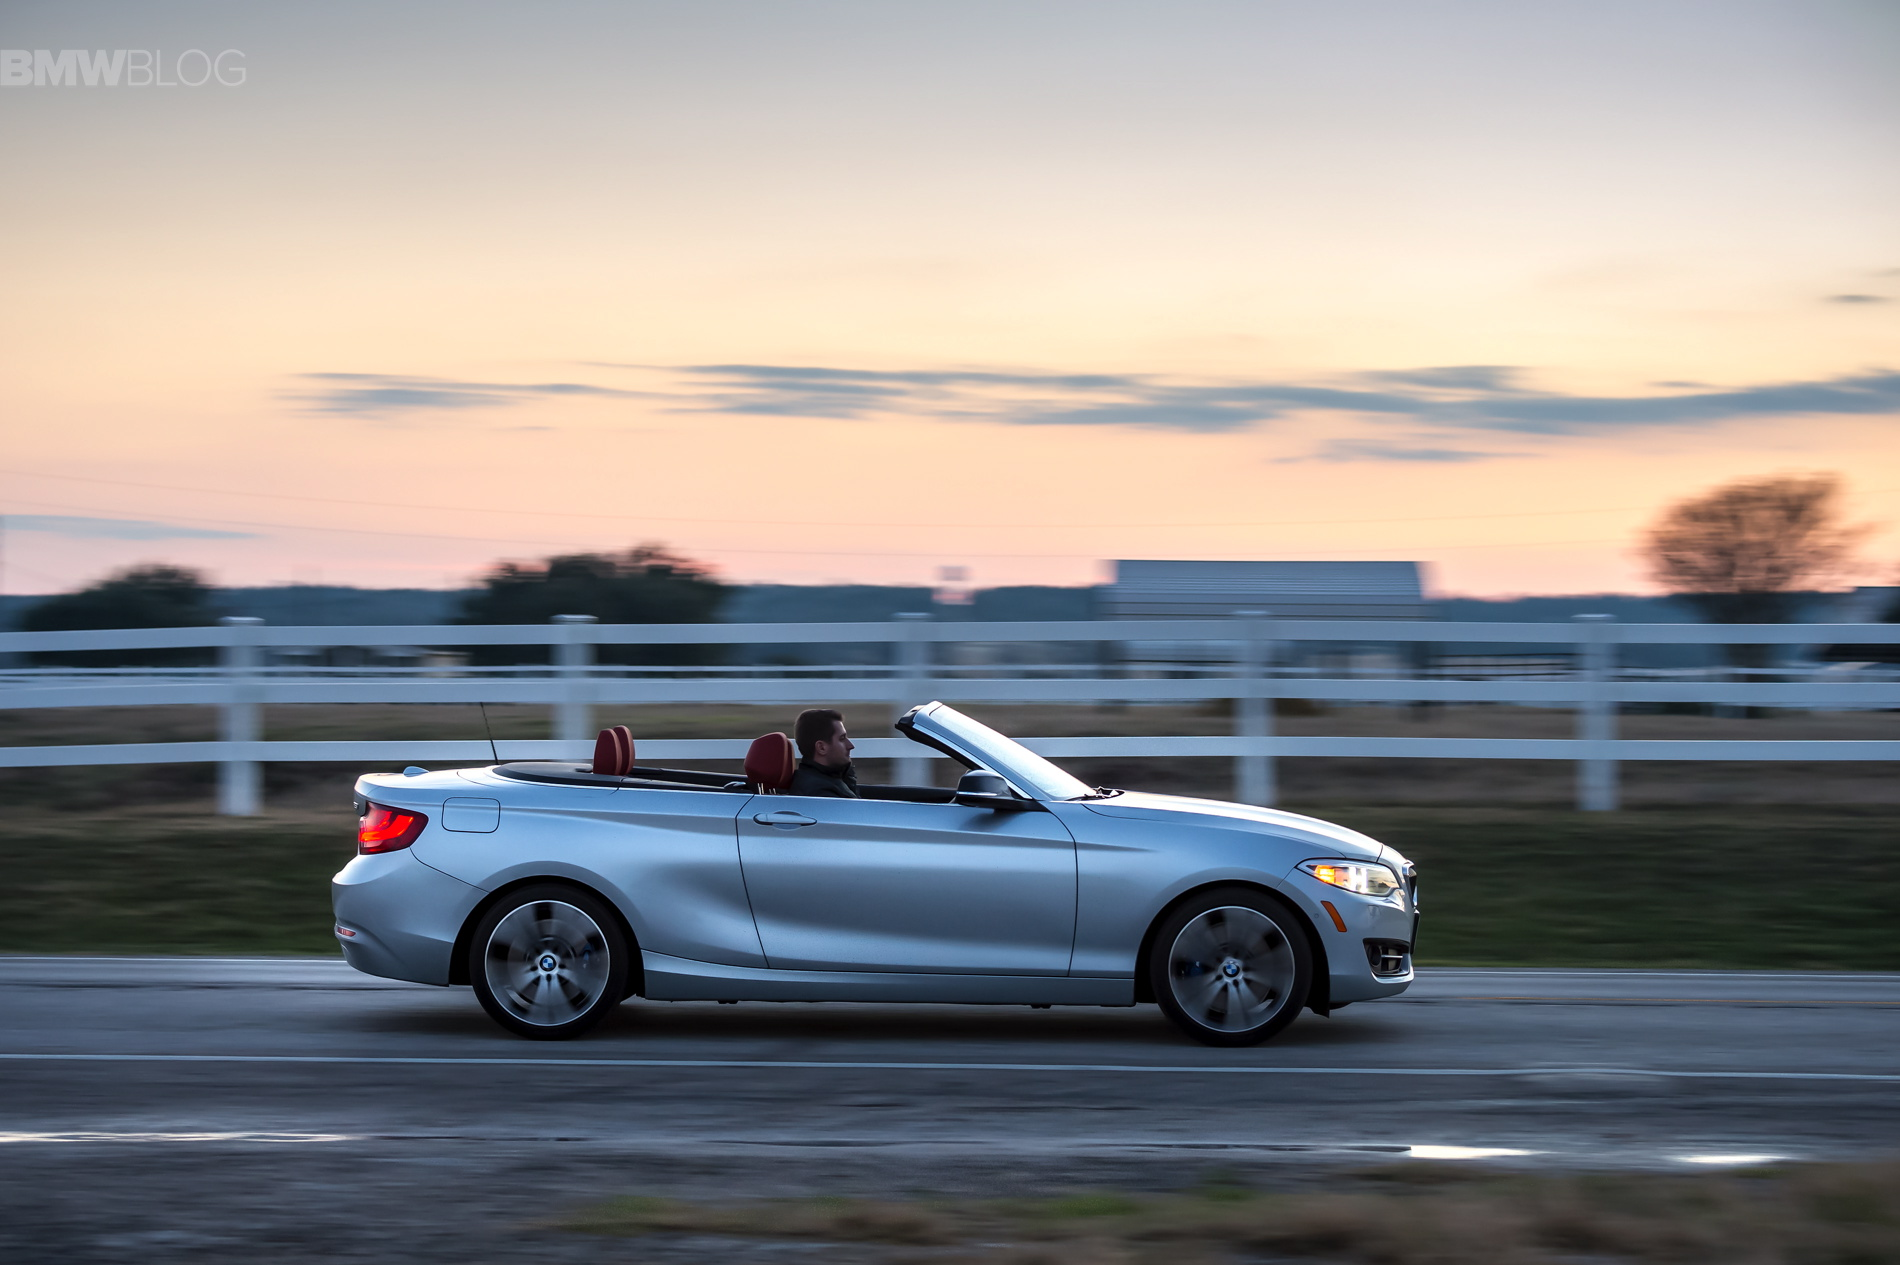 2015 bmw 2 series convertible images 52